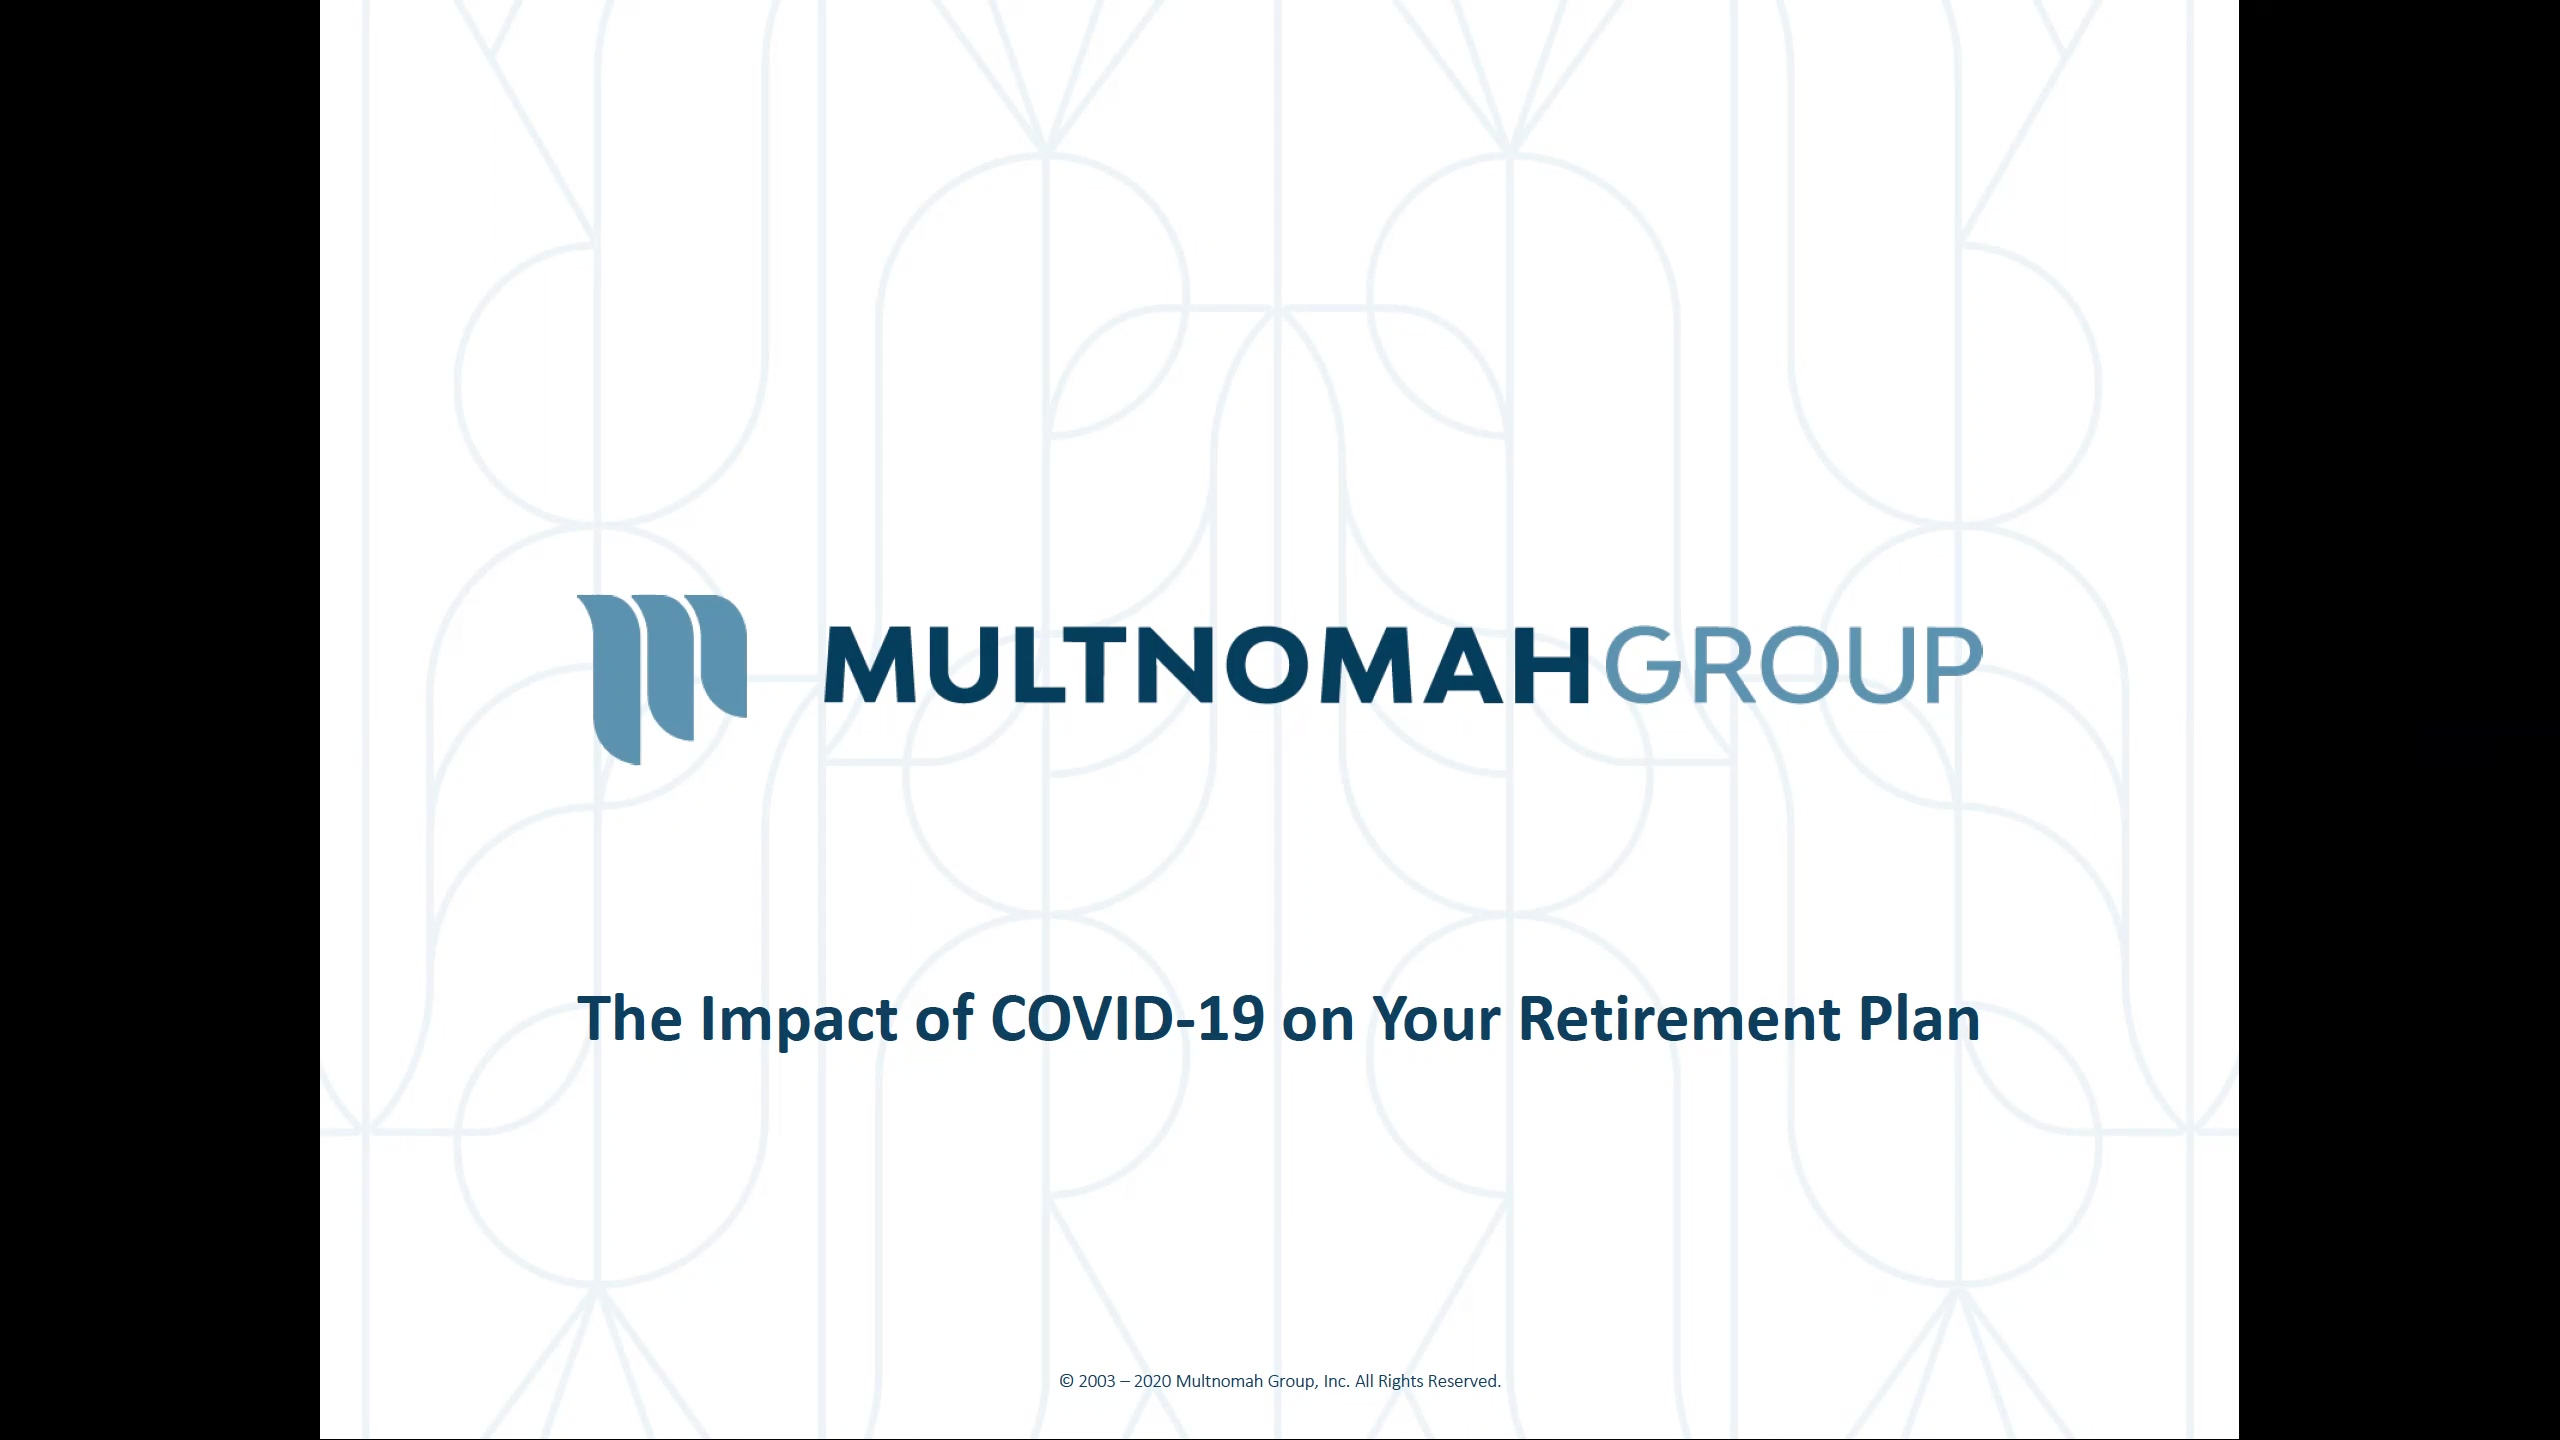 The Impact of COVID-19 on Your Retirement Plan